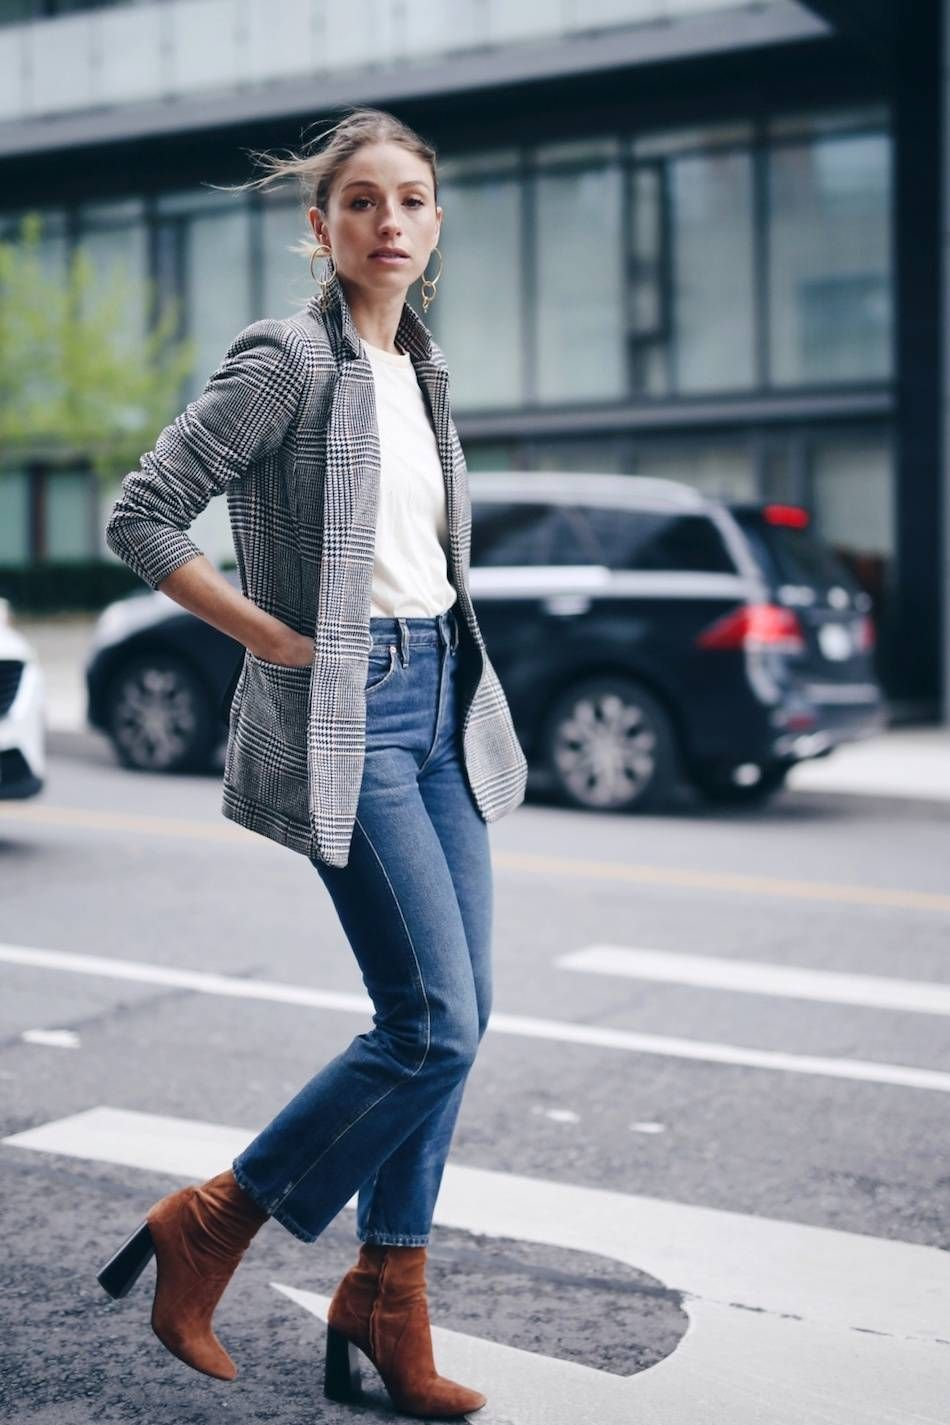 The best jackets to buy for Fall